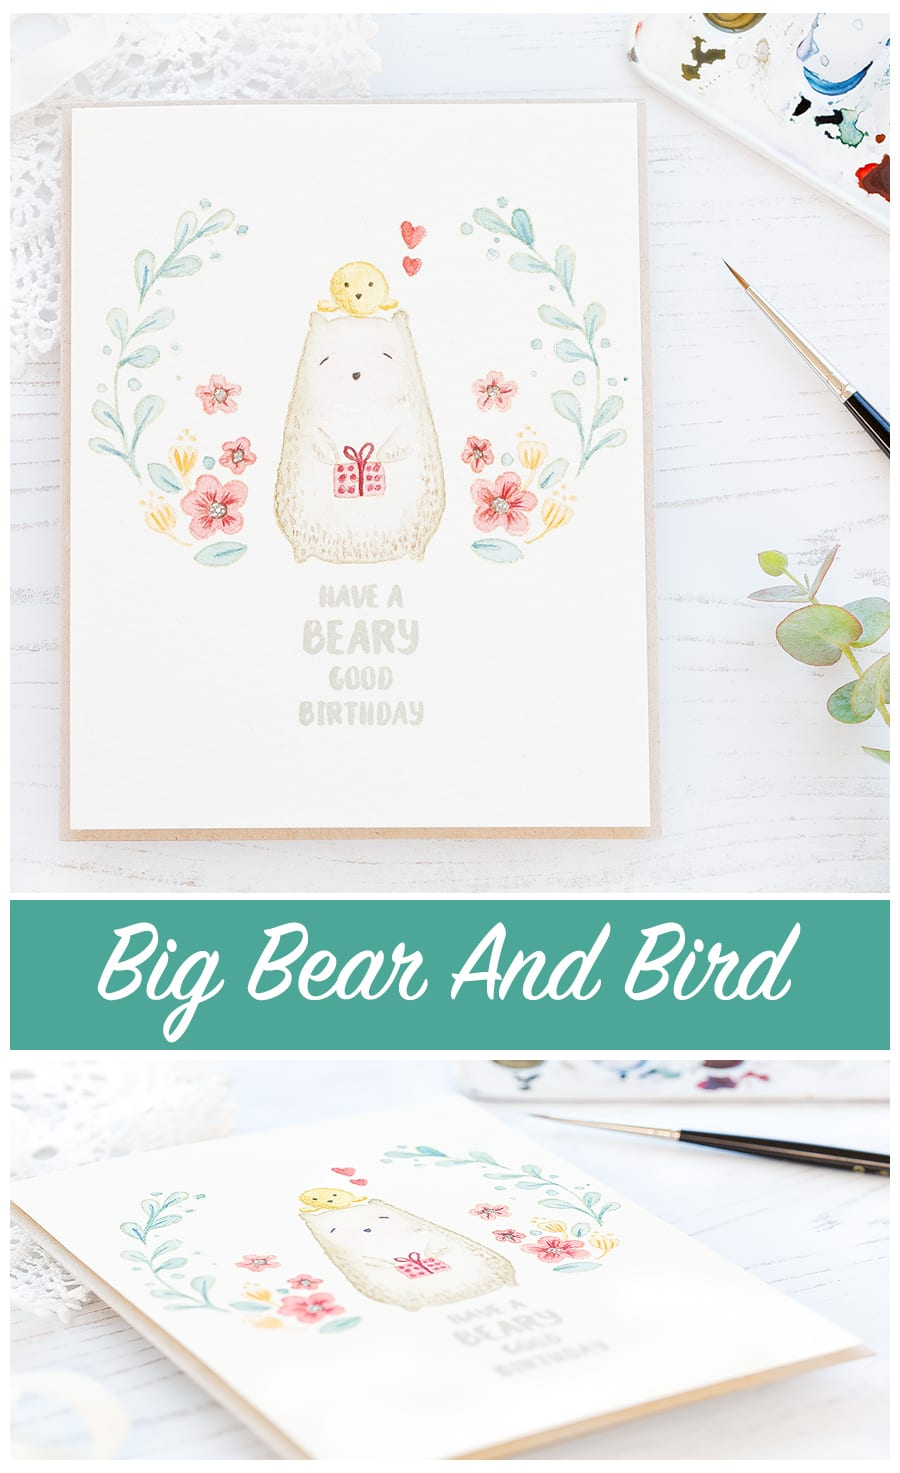 Video how to - soft no line watercoloring by Debby Hughes of the lovely Bear And Bird set from Waffle Flower. Find out more by clicking on the following link: https://limedoodledesign.com/2017/01/video-how-to-soft-no-line-watercoloring/